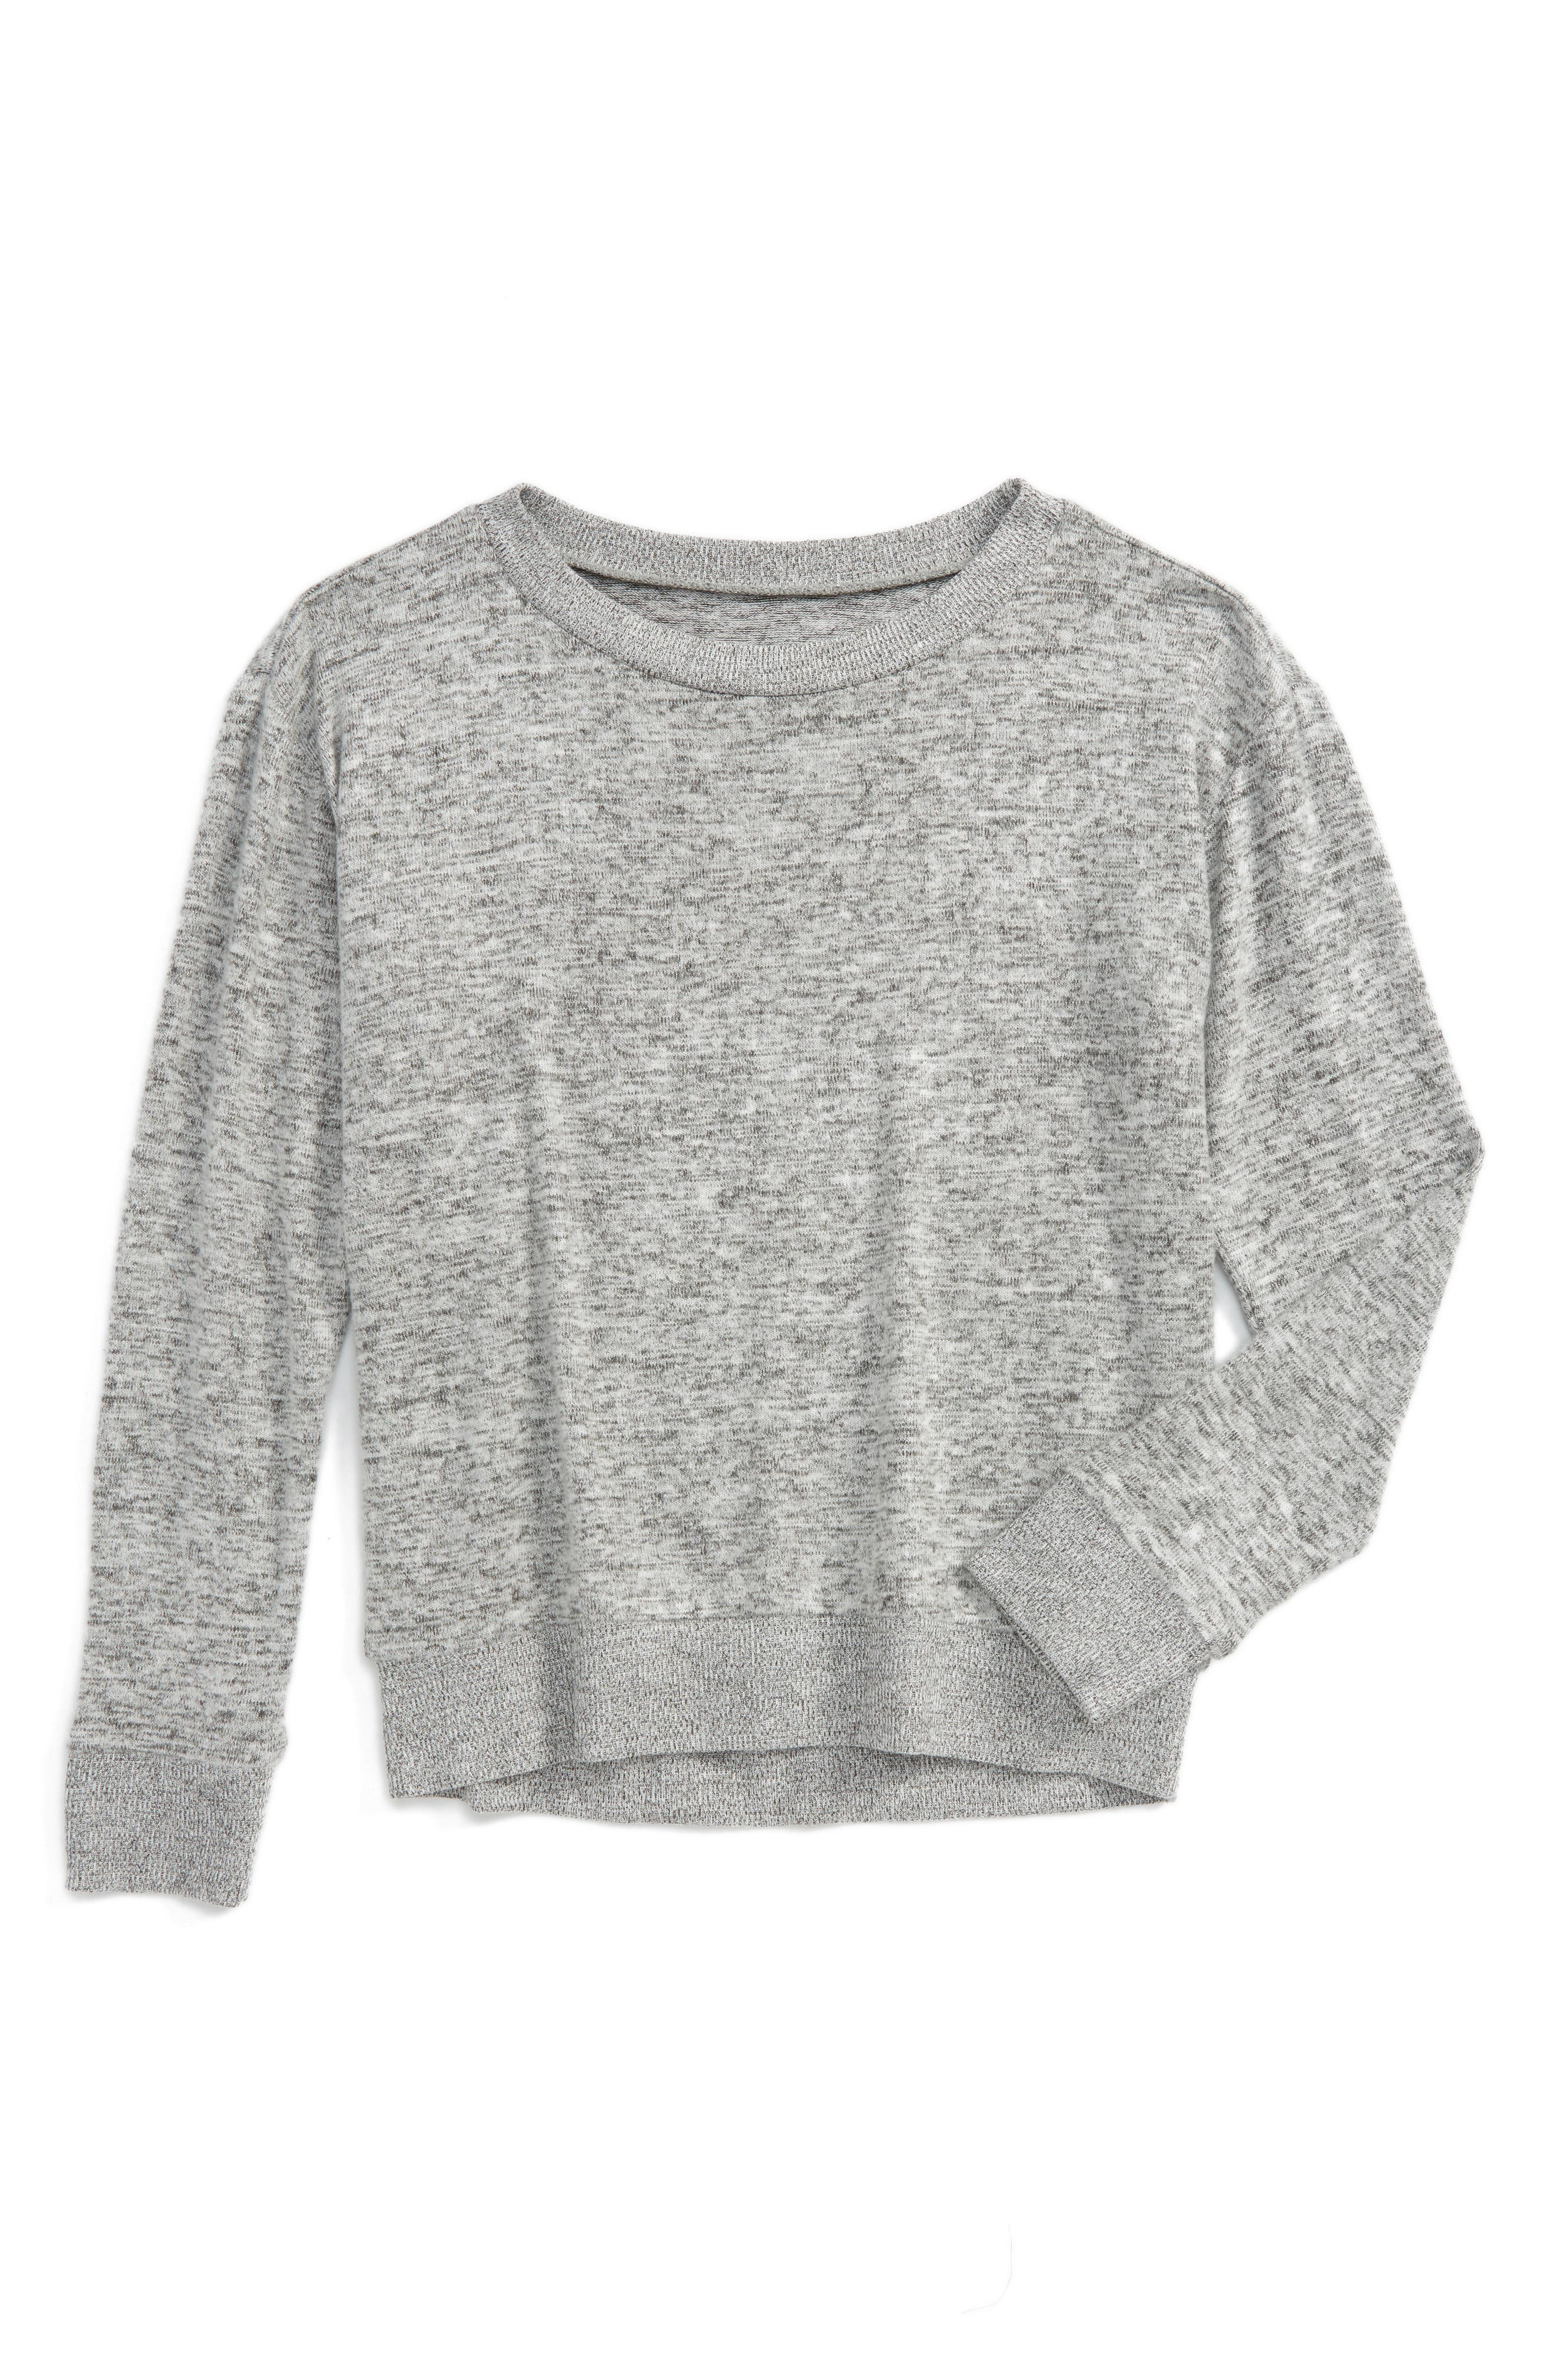 Supersoft Sweater,                         Main,                         color,